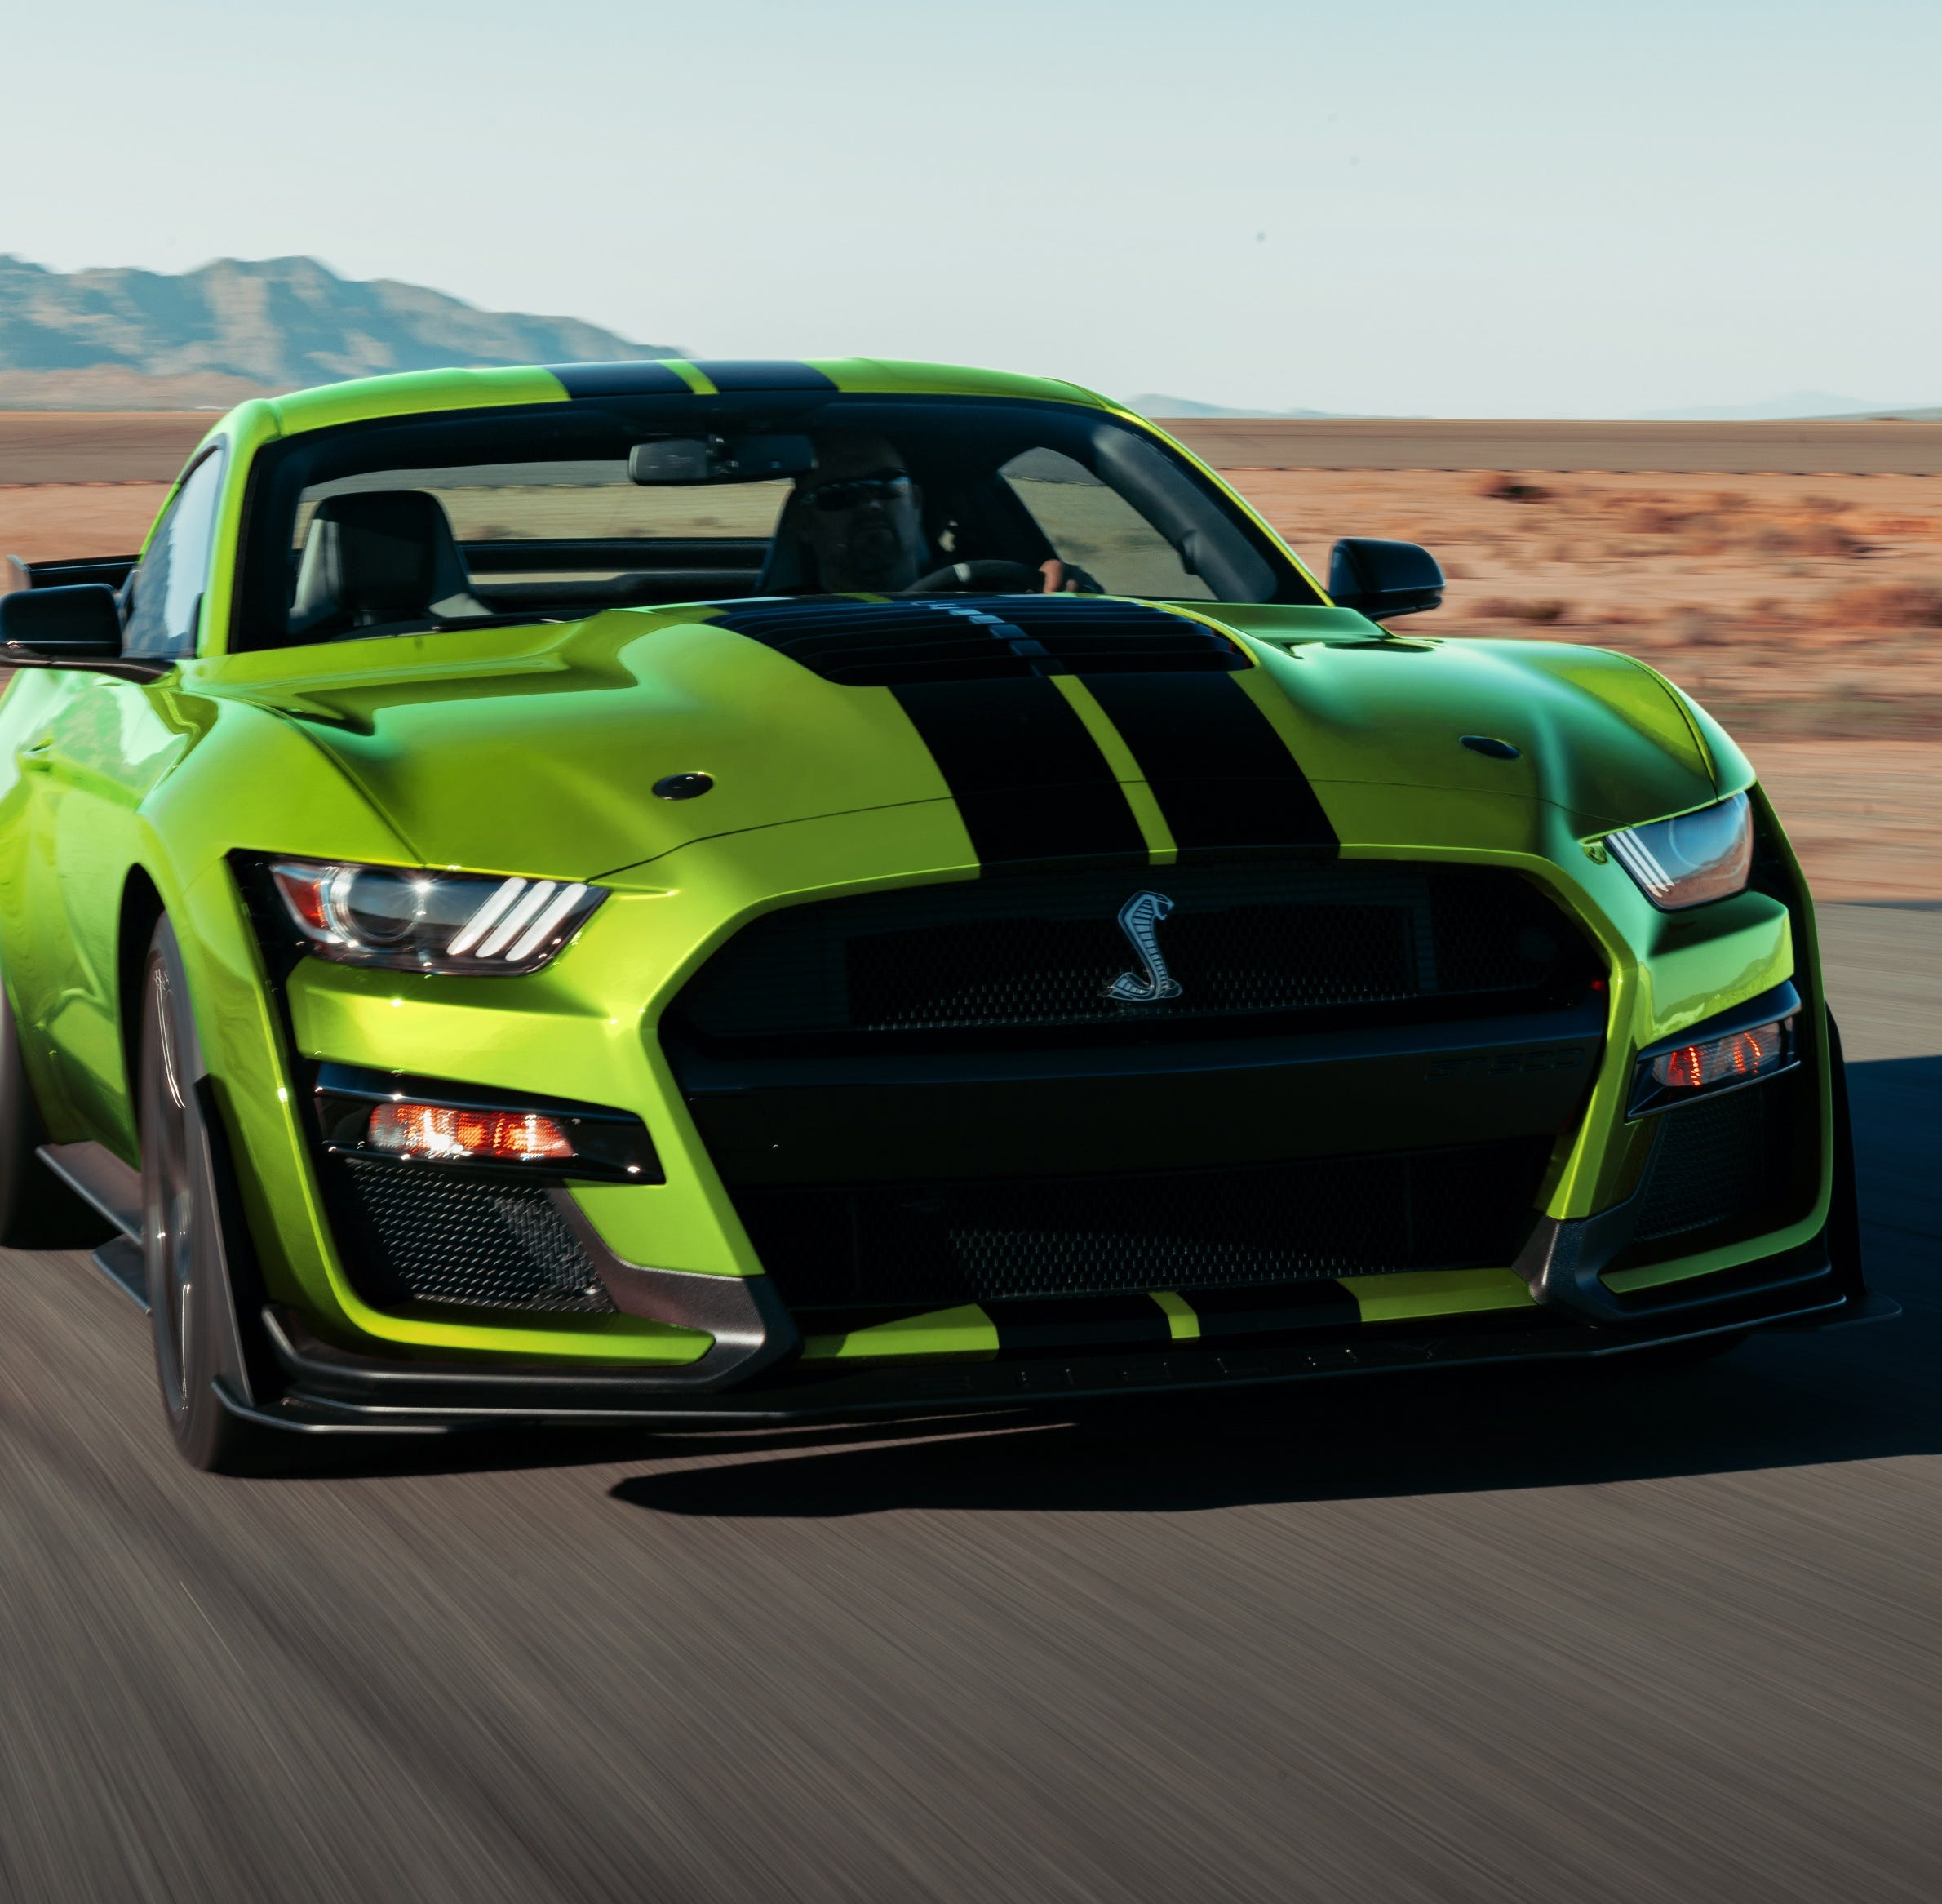 Ford Mustang unveils lime green option in time for St. Patrick's Day